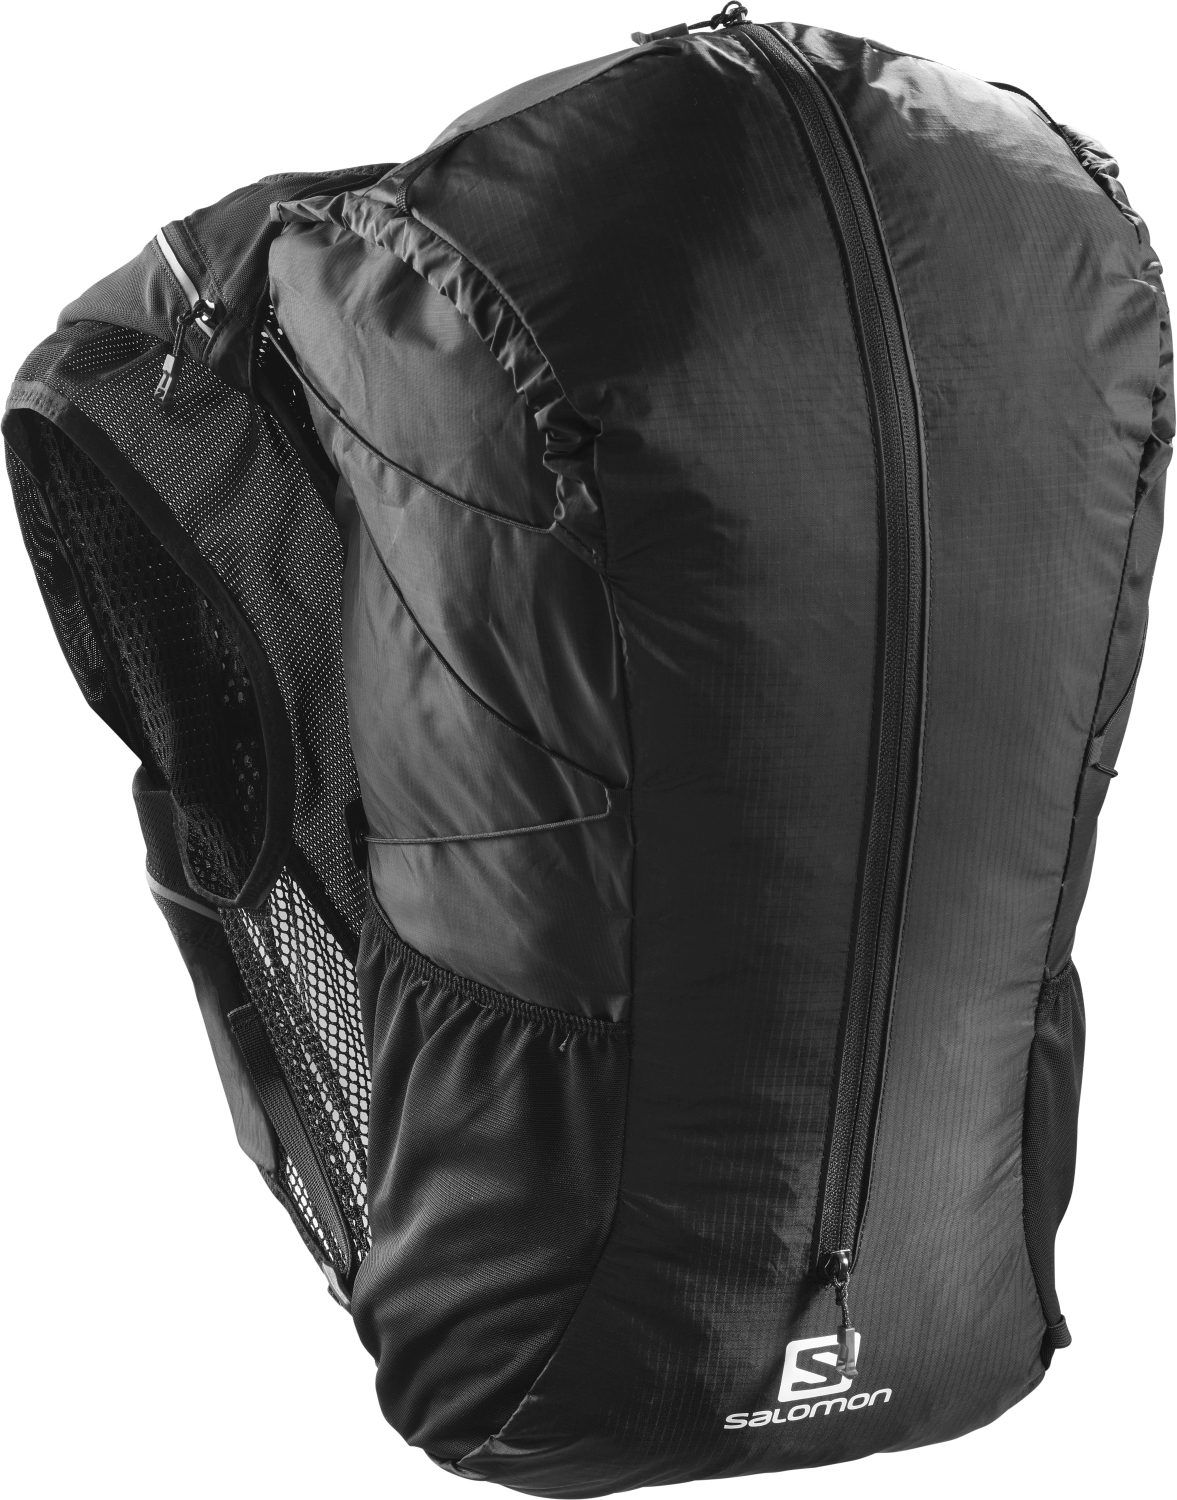 Rucsac Salomon Bag Out Peak 20L - Negru